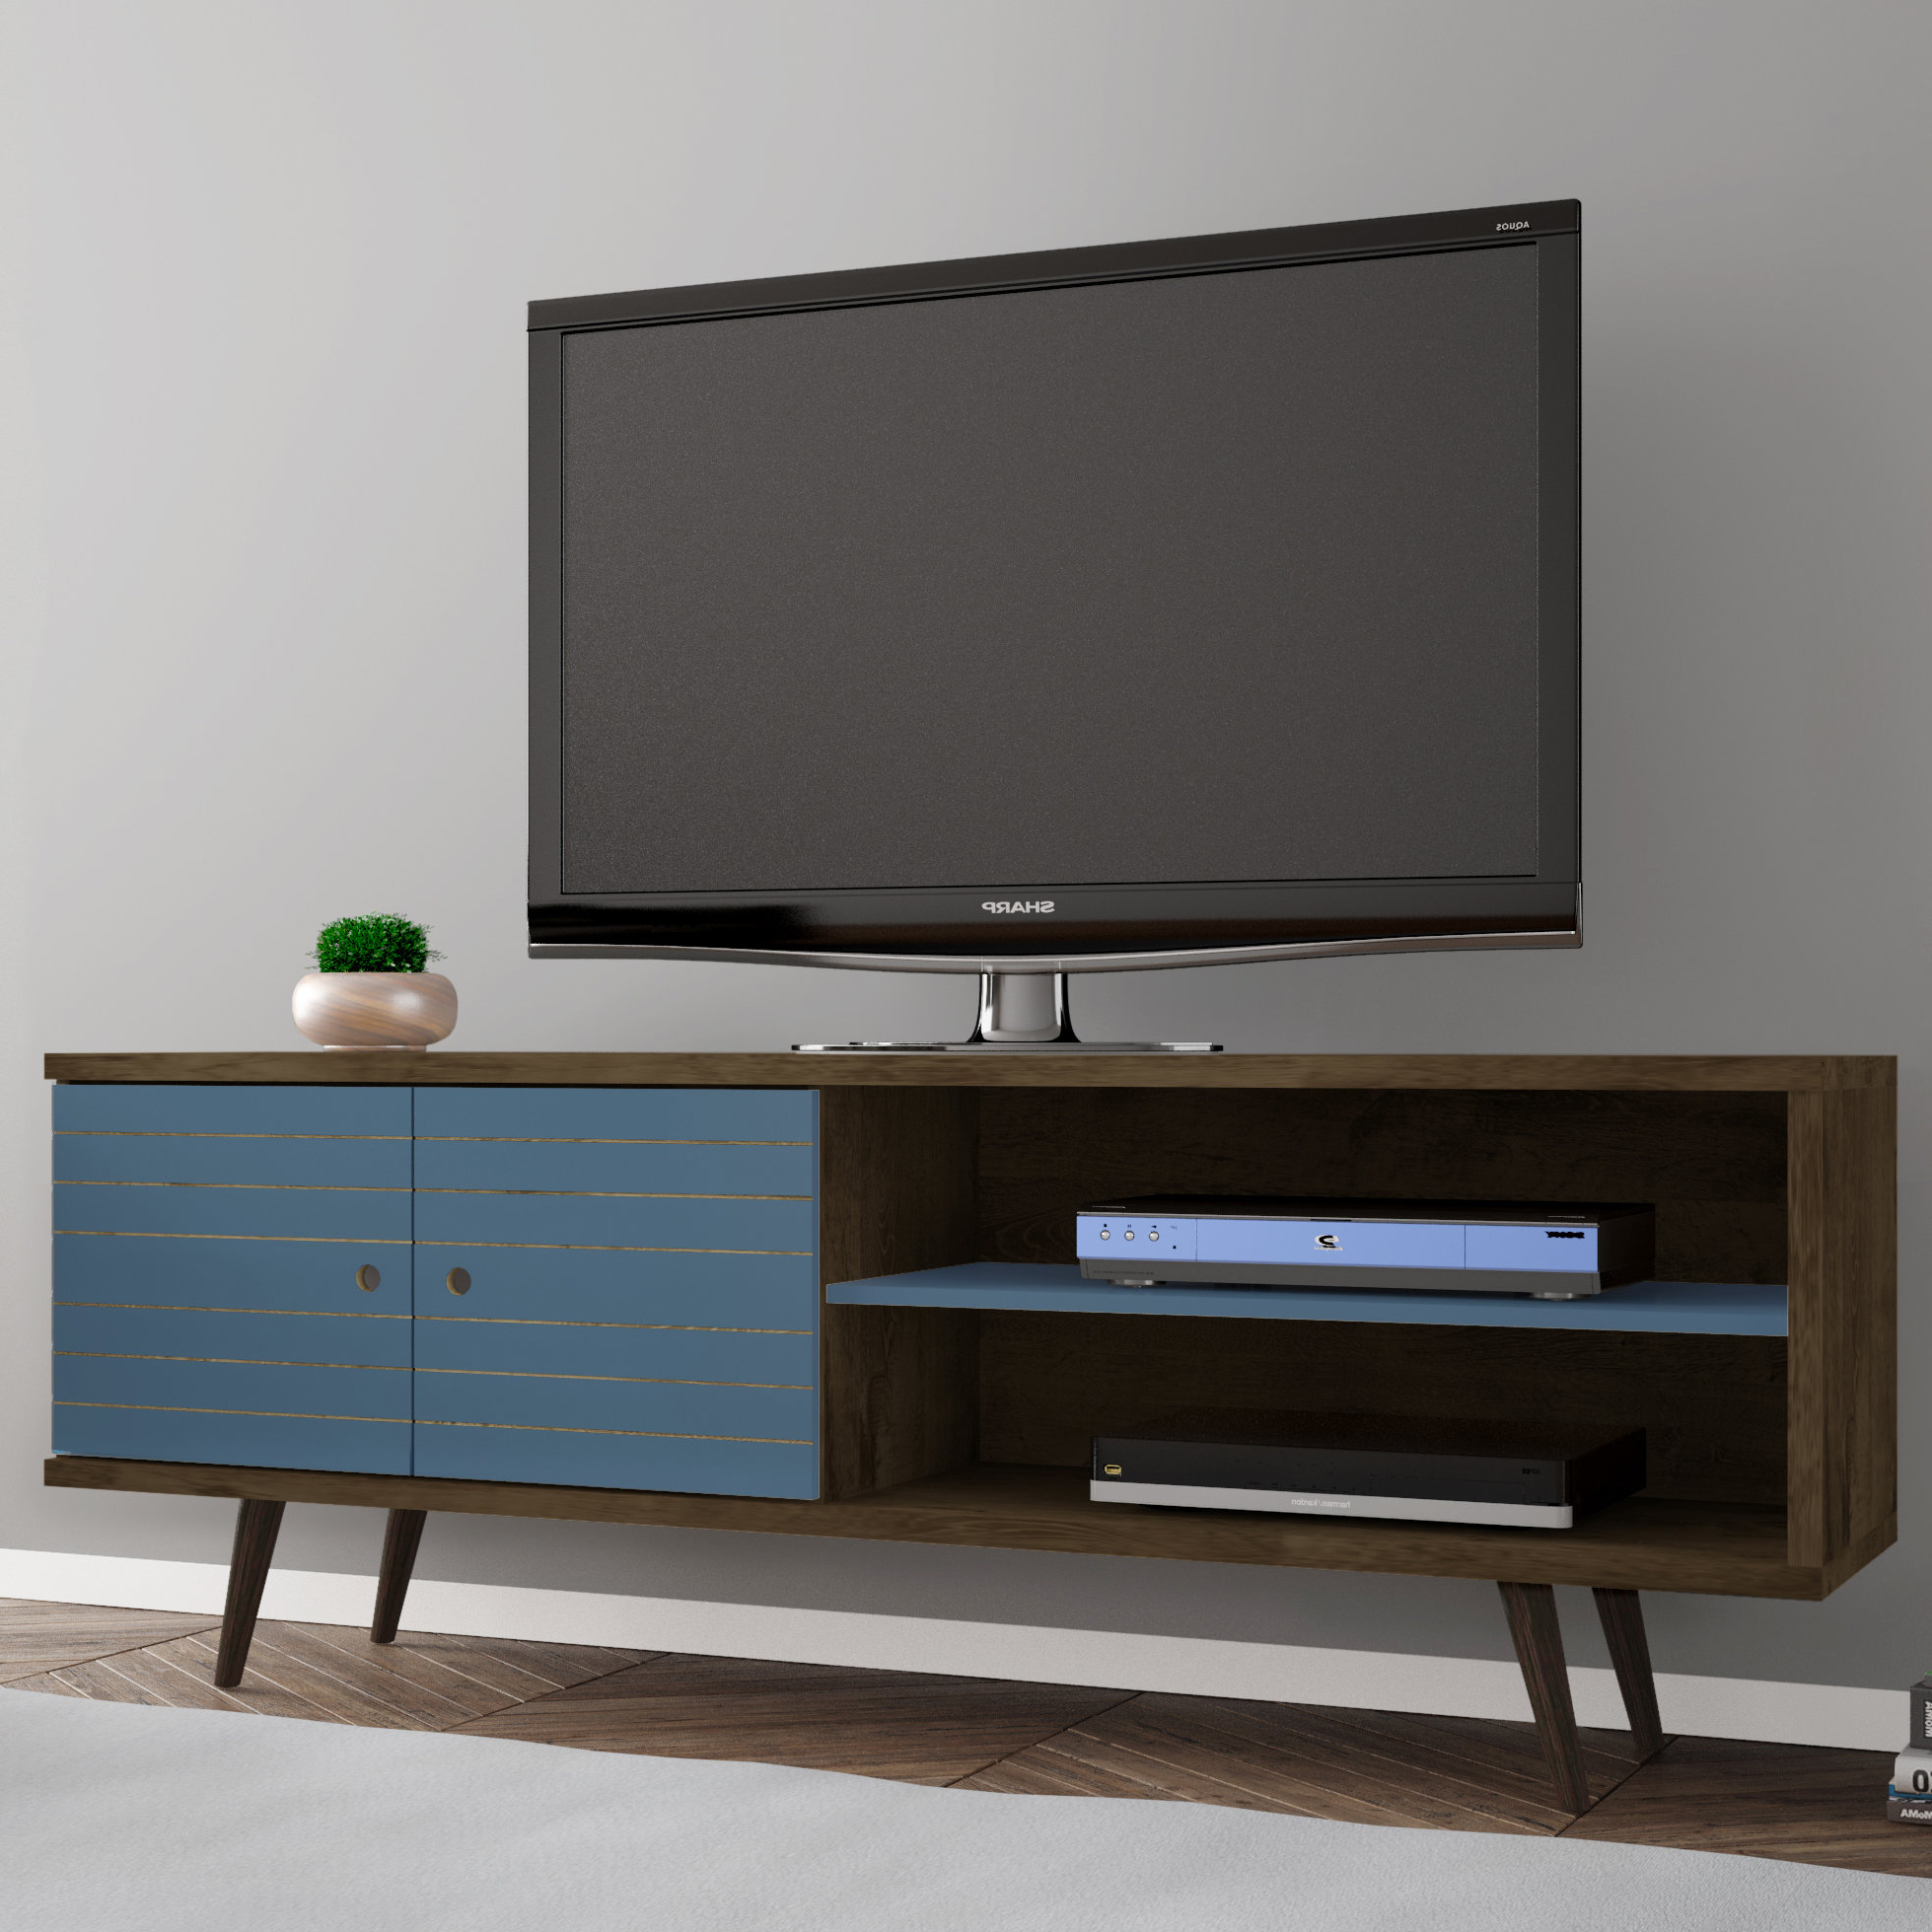 Blue Tv Stands You'll Love | Wayfair Inside Century Blue 60 Inch Tv Stands (View 9 of 20)